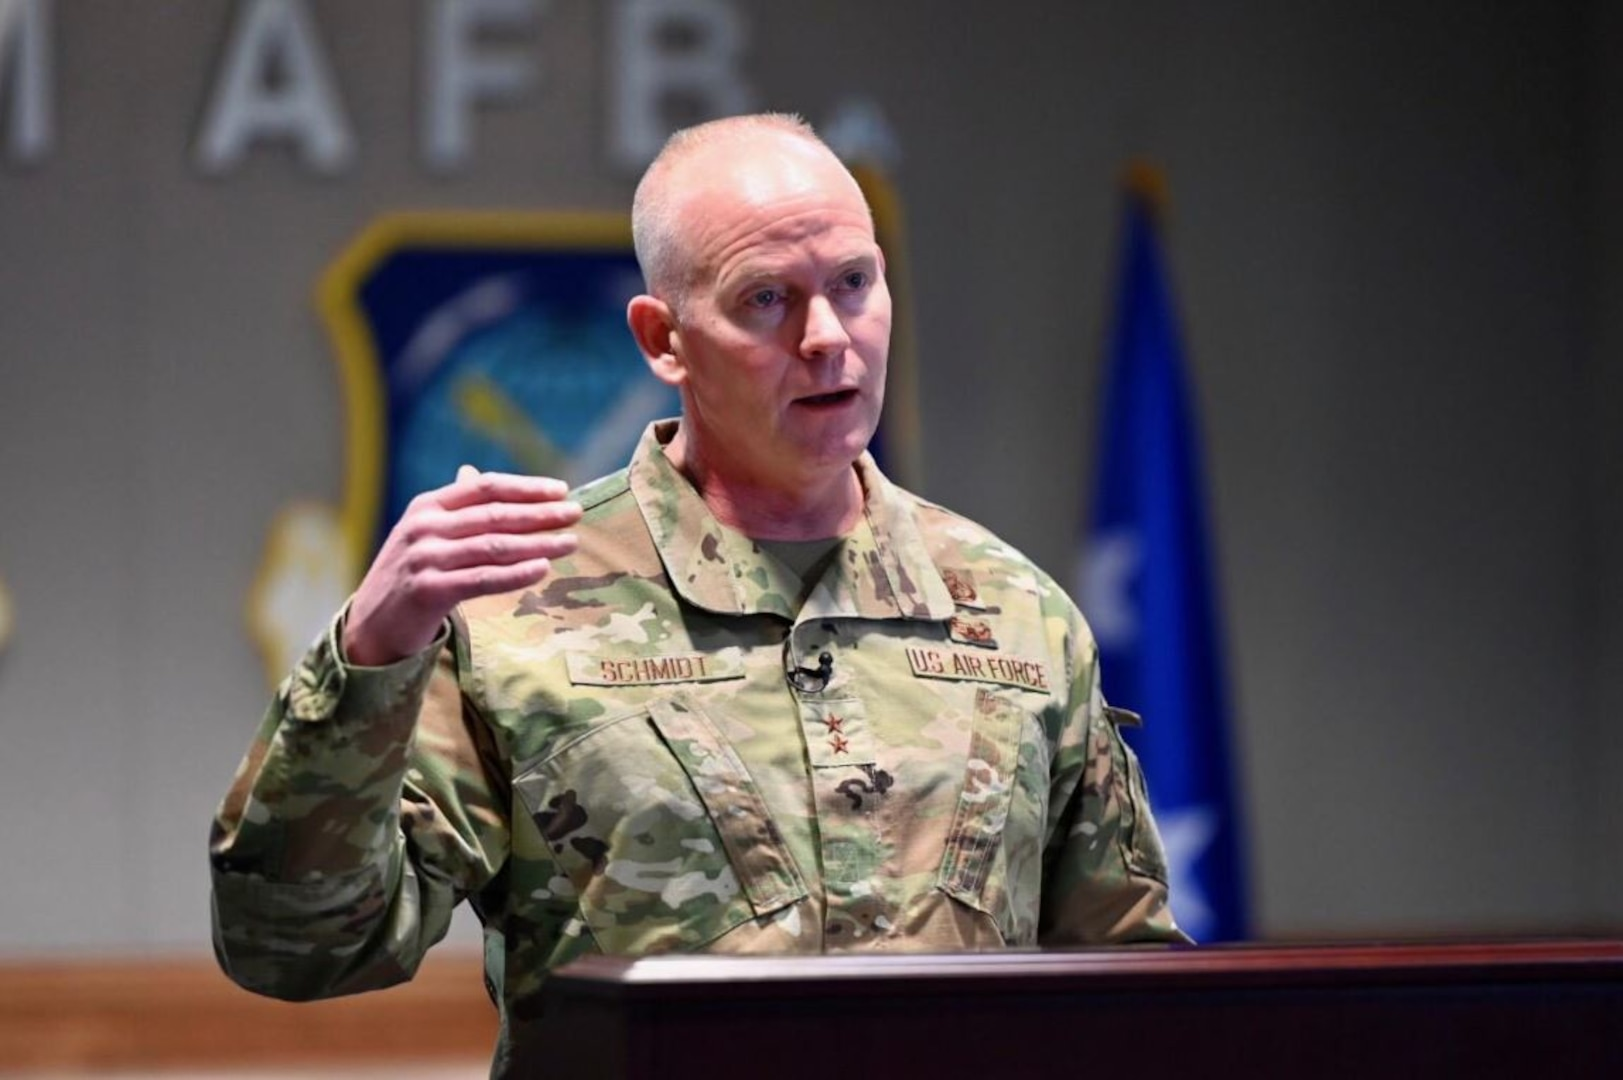 Maj. Gen. Michael Schmidt, program executive officer, Command, Control, Communications, Intelligence, and Networks, headquartered here, speaks to defense and industry leaders during a virtual presentation to AFCEA Lexington-Concord Chapter's New Horizons 2021 March 17. Schmidt provided an overview of his $12 billion portfolio, discussed the impact of the pandemic on the expansion of IT infrastructure, and provided critical program updates. (U.S. Air Force photo by Mark Herlihy)